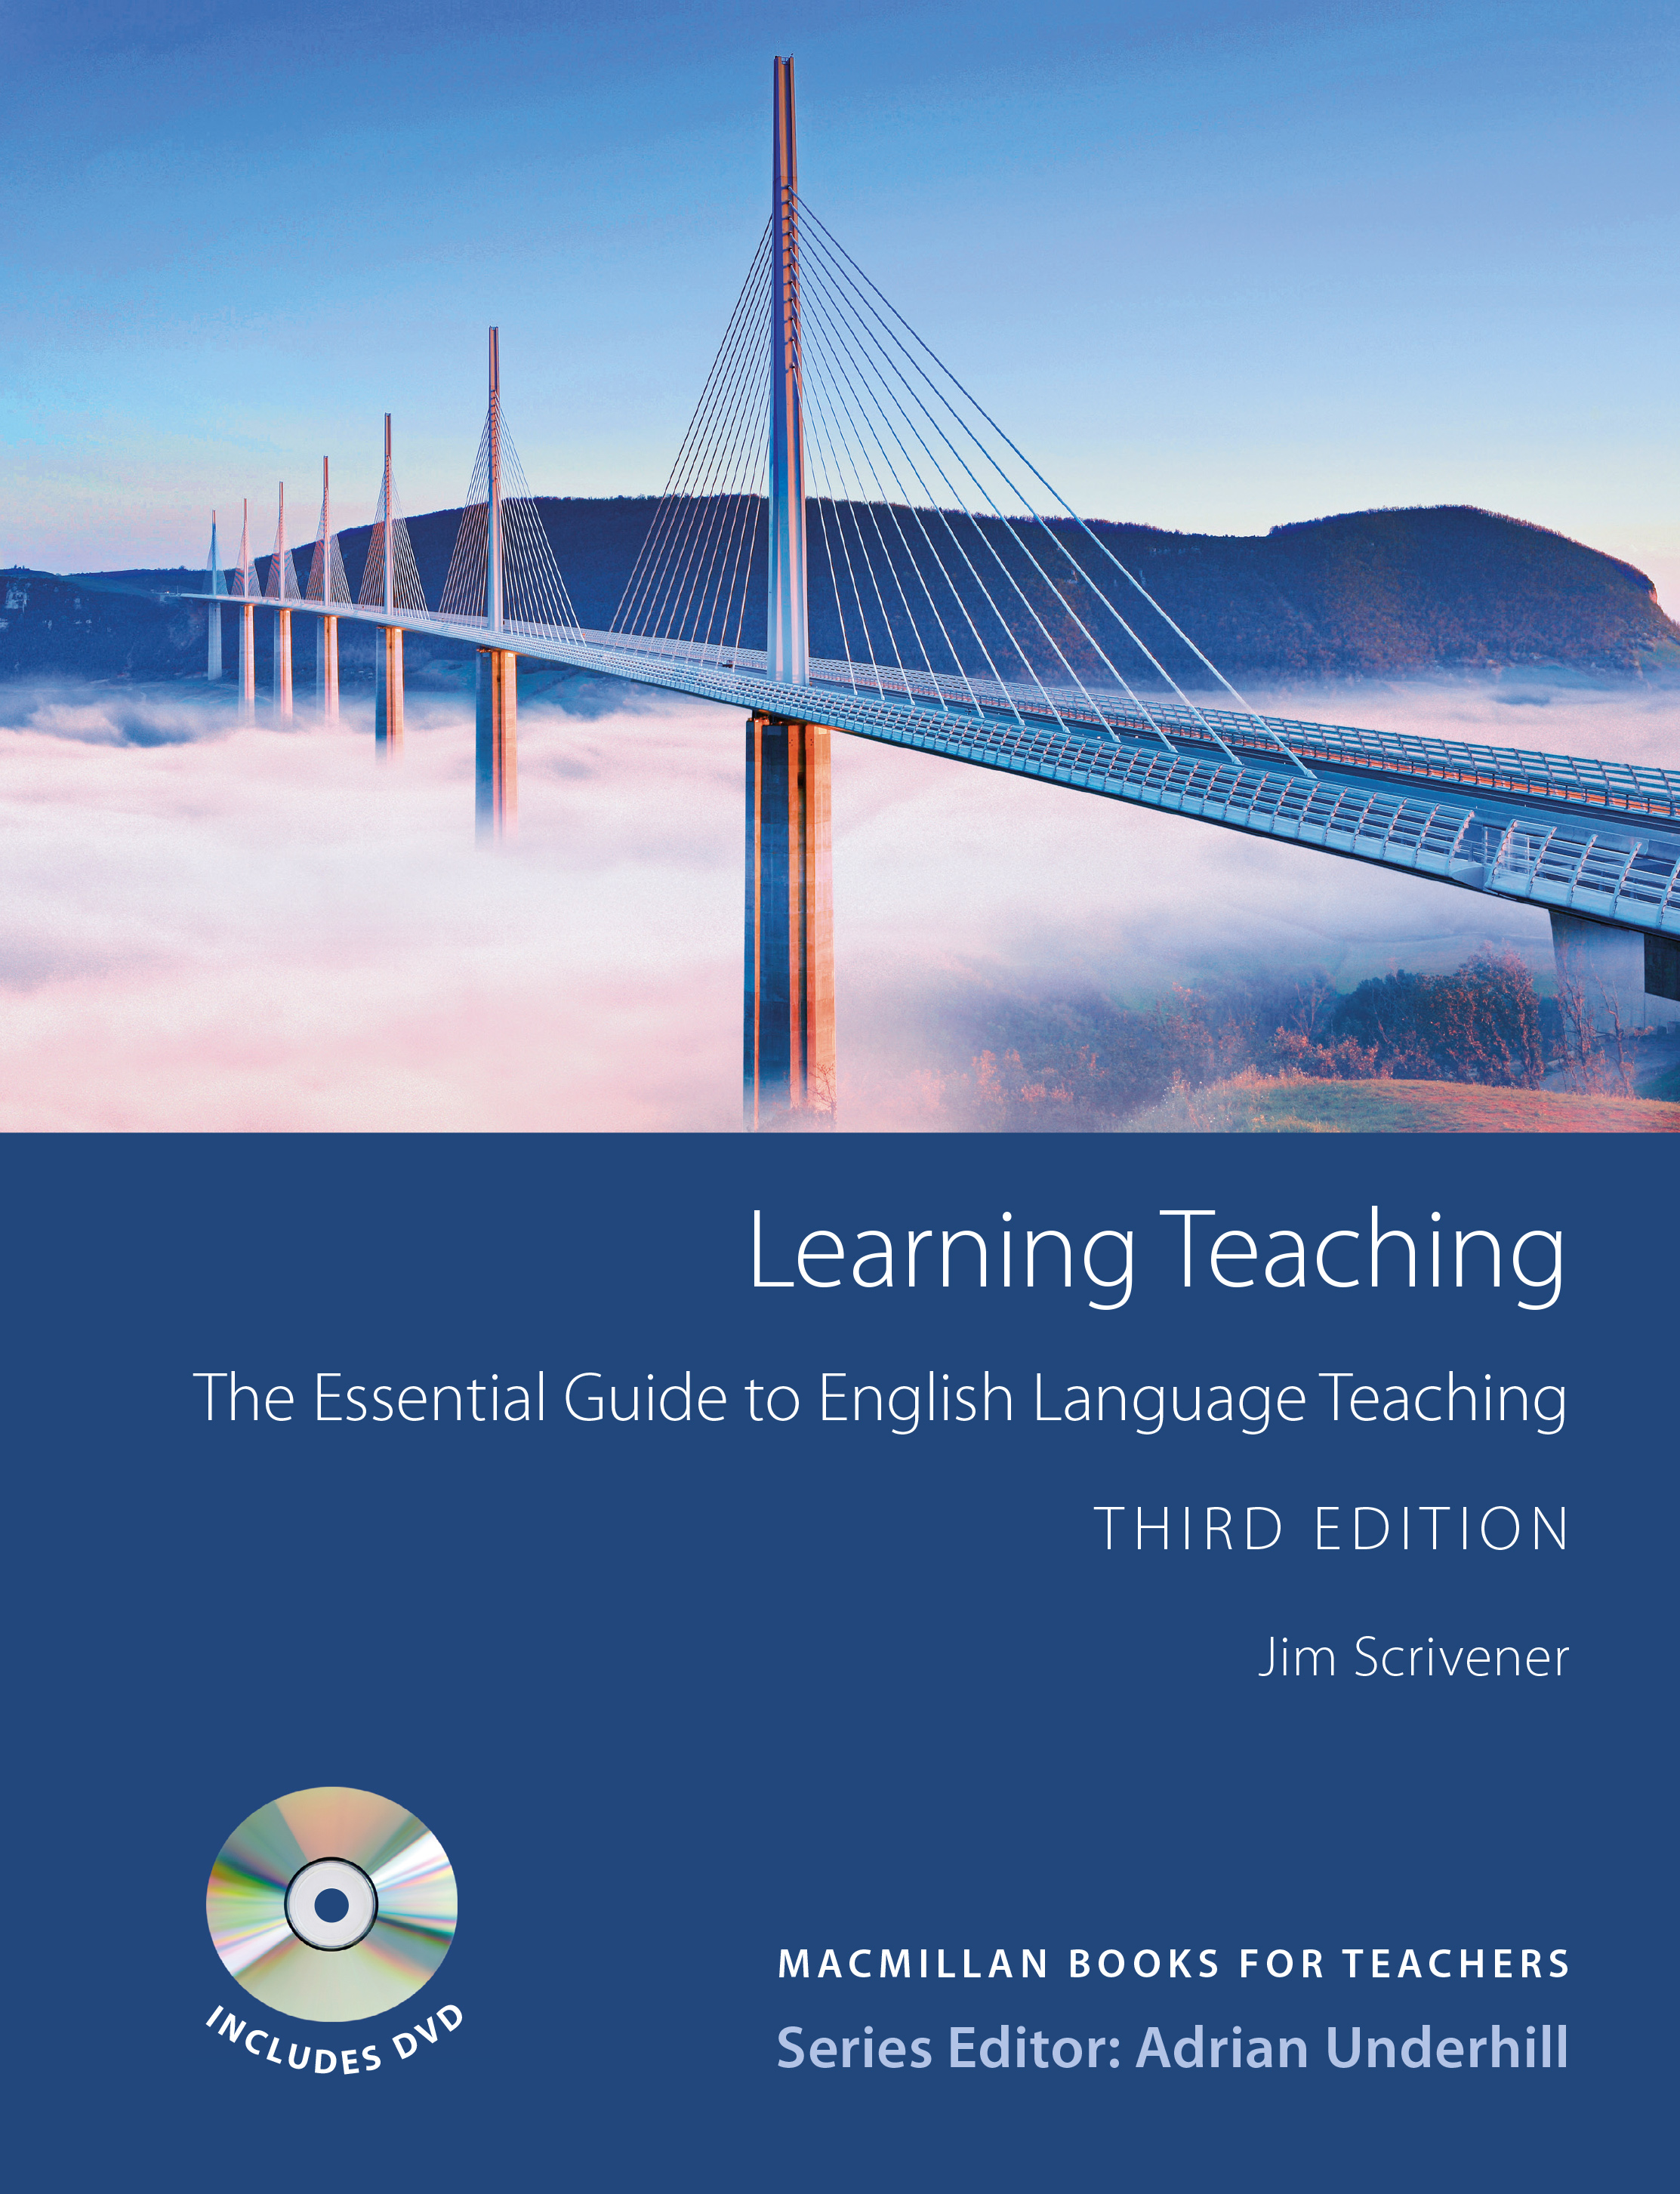 Learning Teaching 3rd Edition